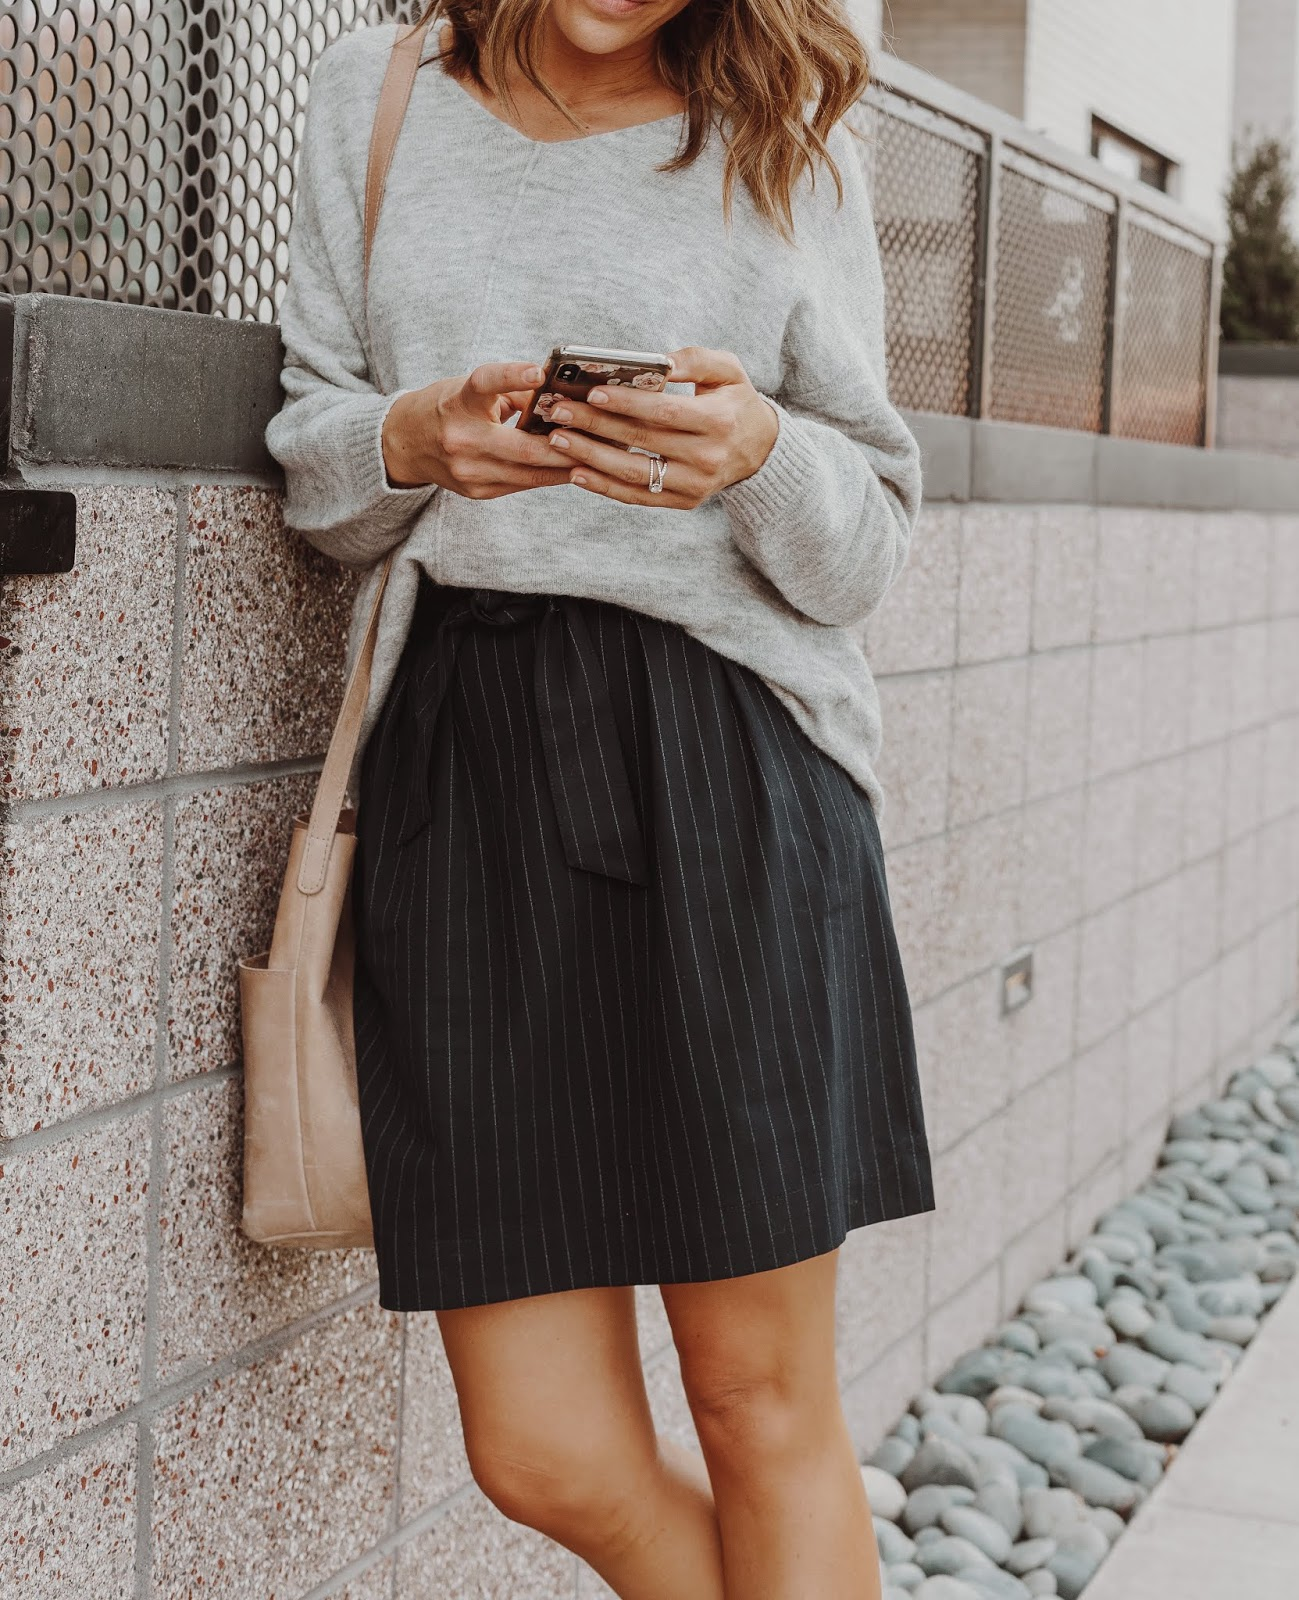 French Tuck Sweater Into Skirt